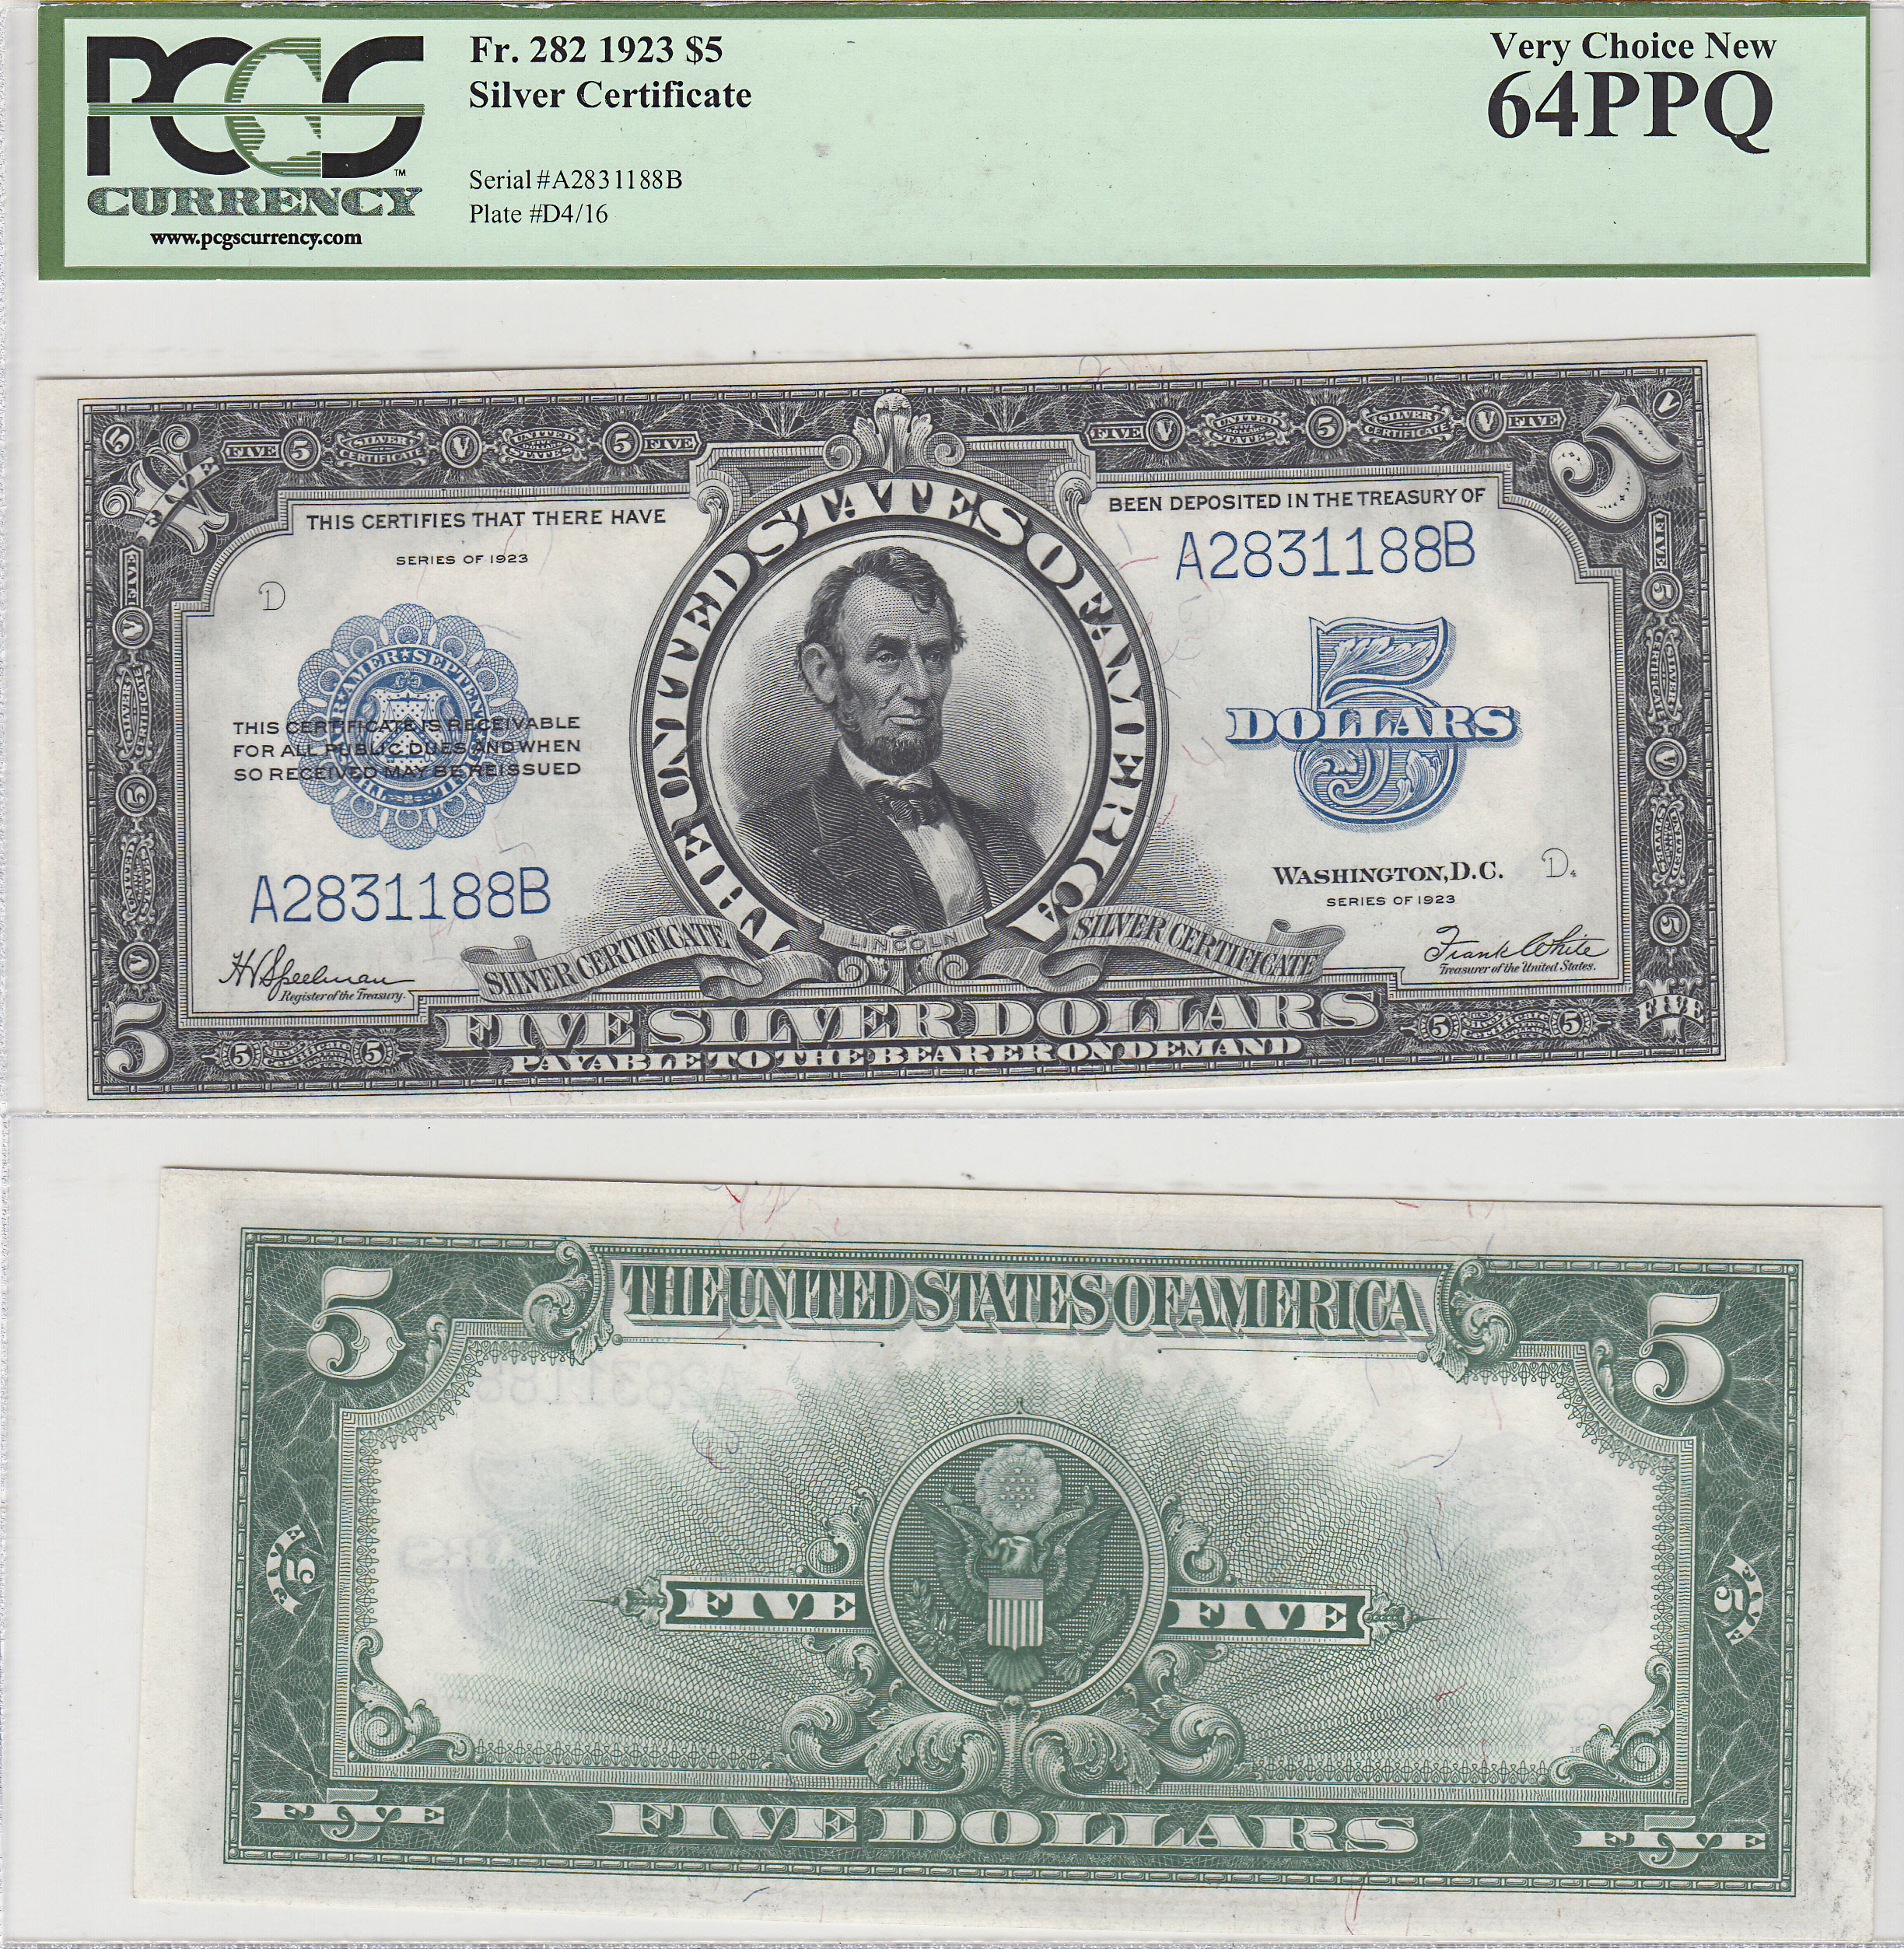 1923 5 Silver Certificate Note Porthole Pcgs Very Choice New 64 Ppq